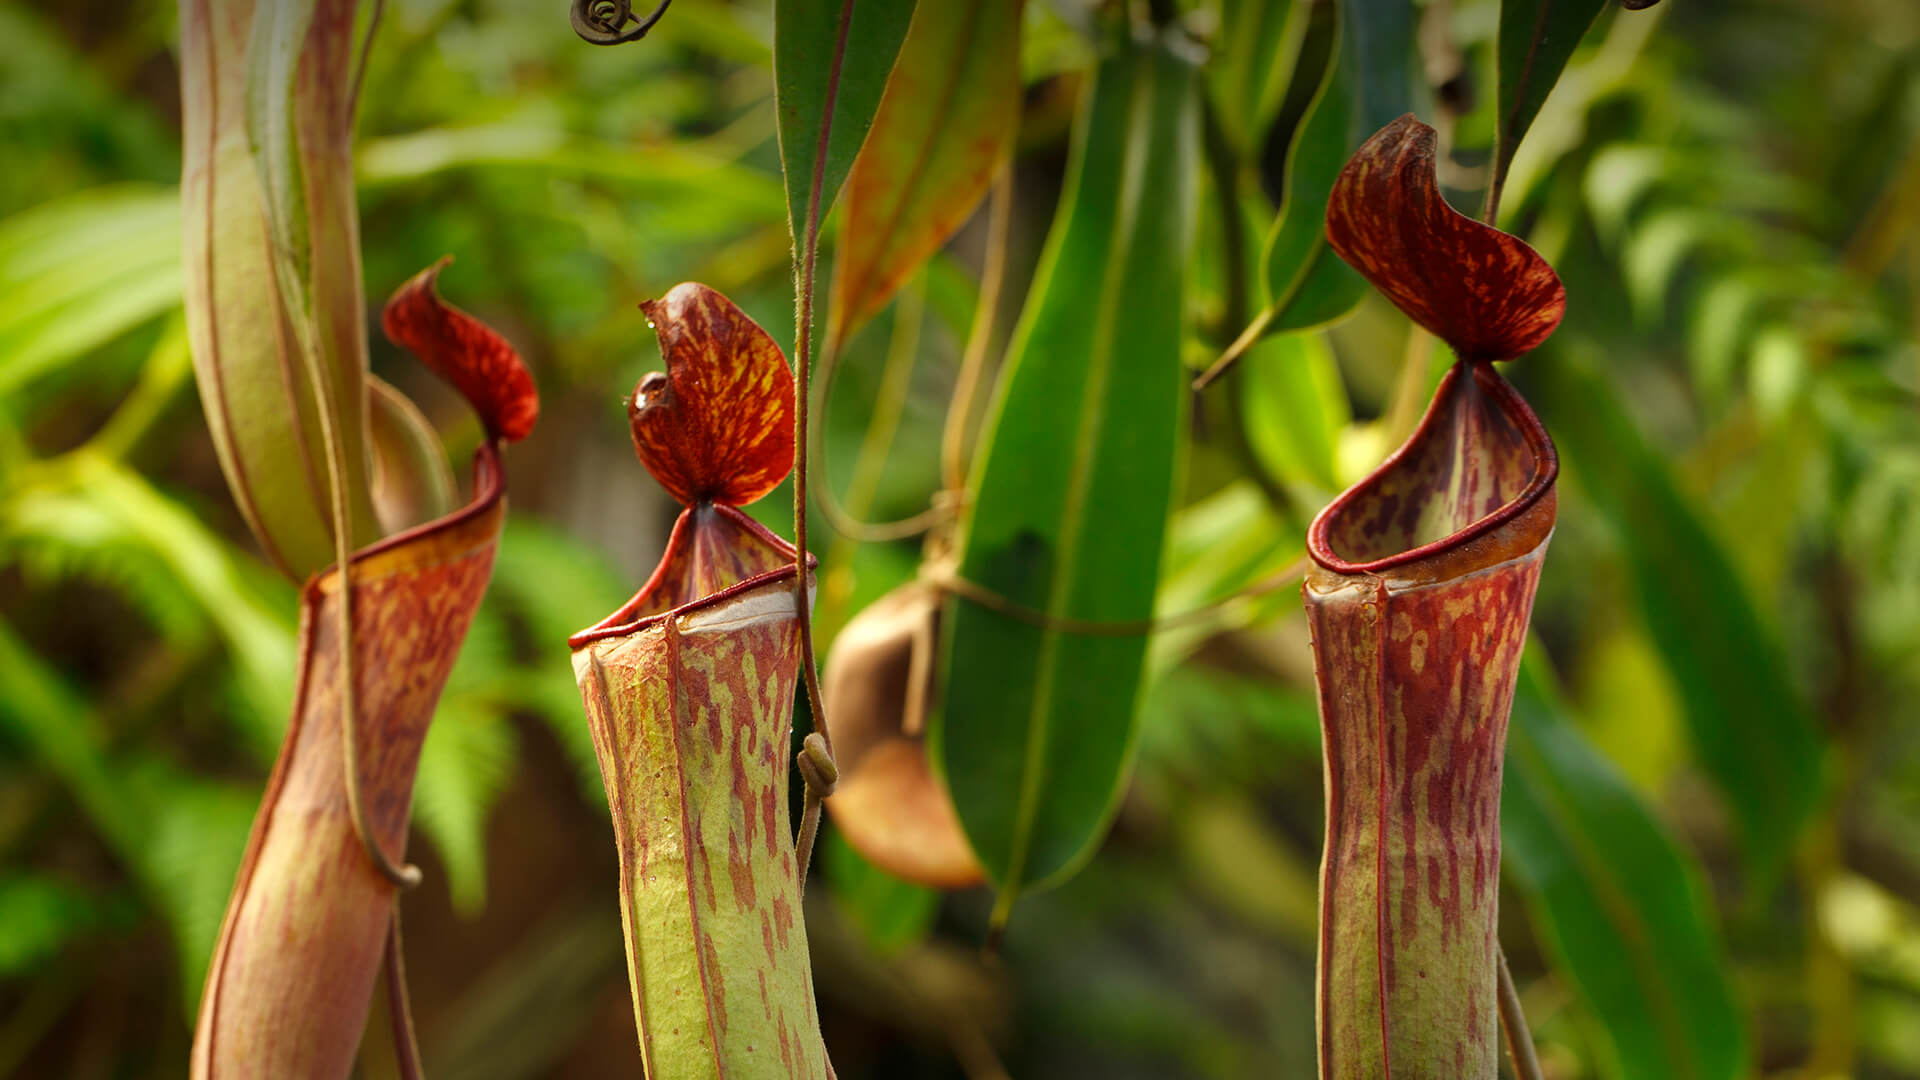 Pitcher plant photo